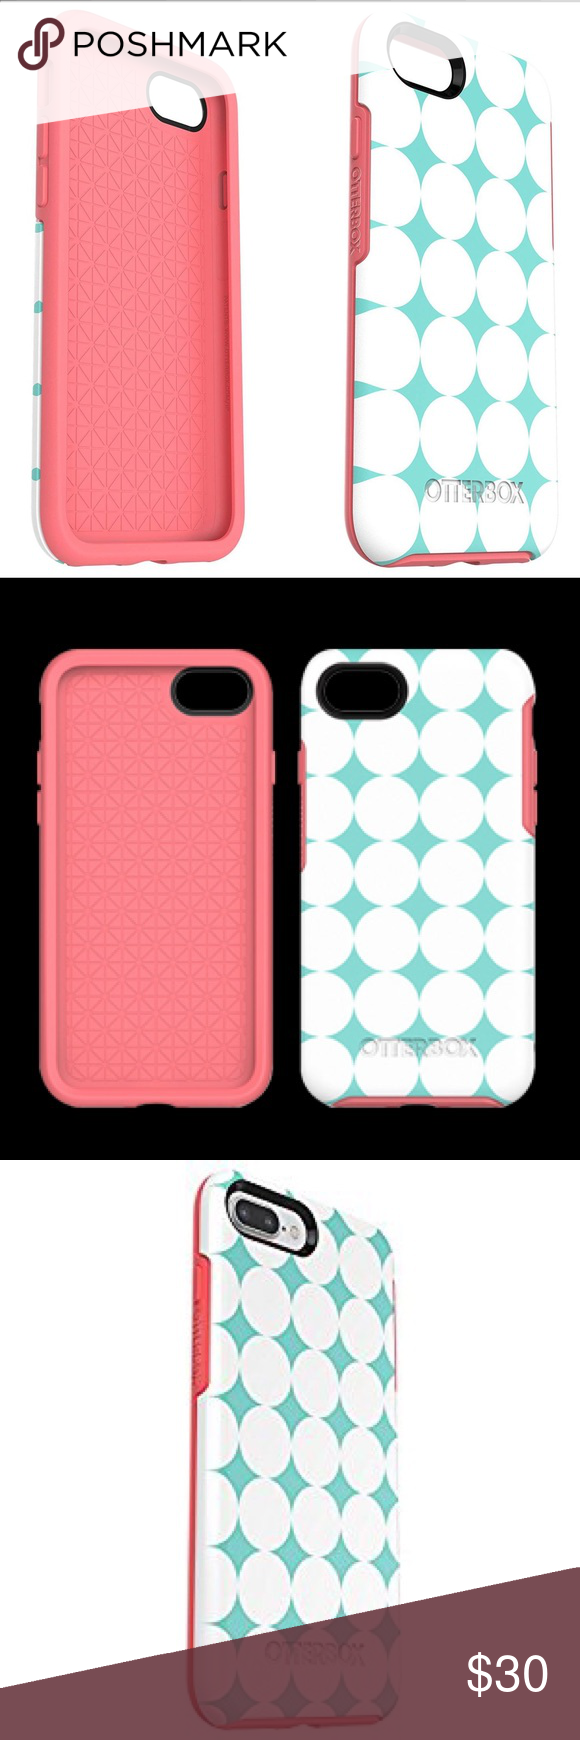 hot sale online 2a10b d1e71 OtterBox iPhone 7 Symmetry Case - Blue/Pink Get sleek and stylish ...